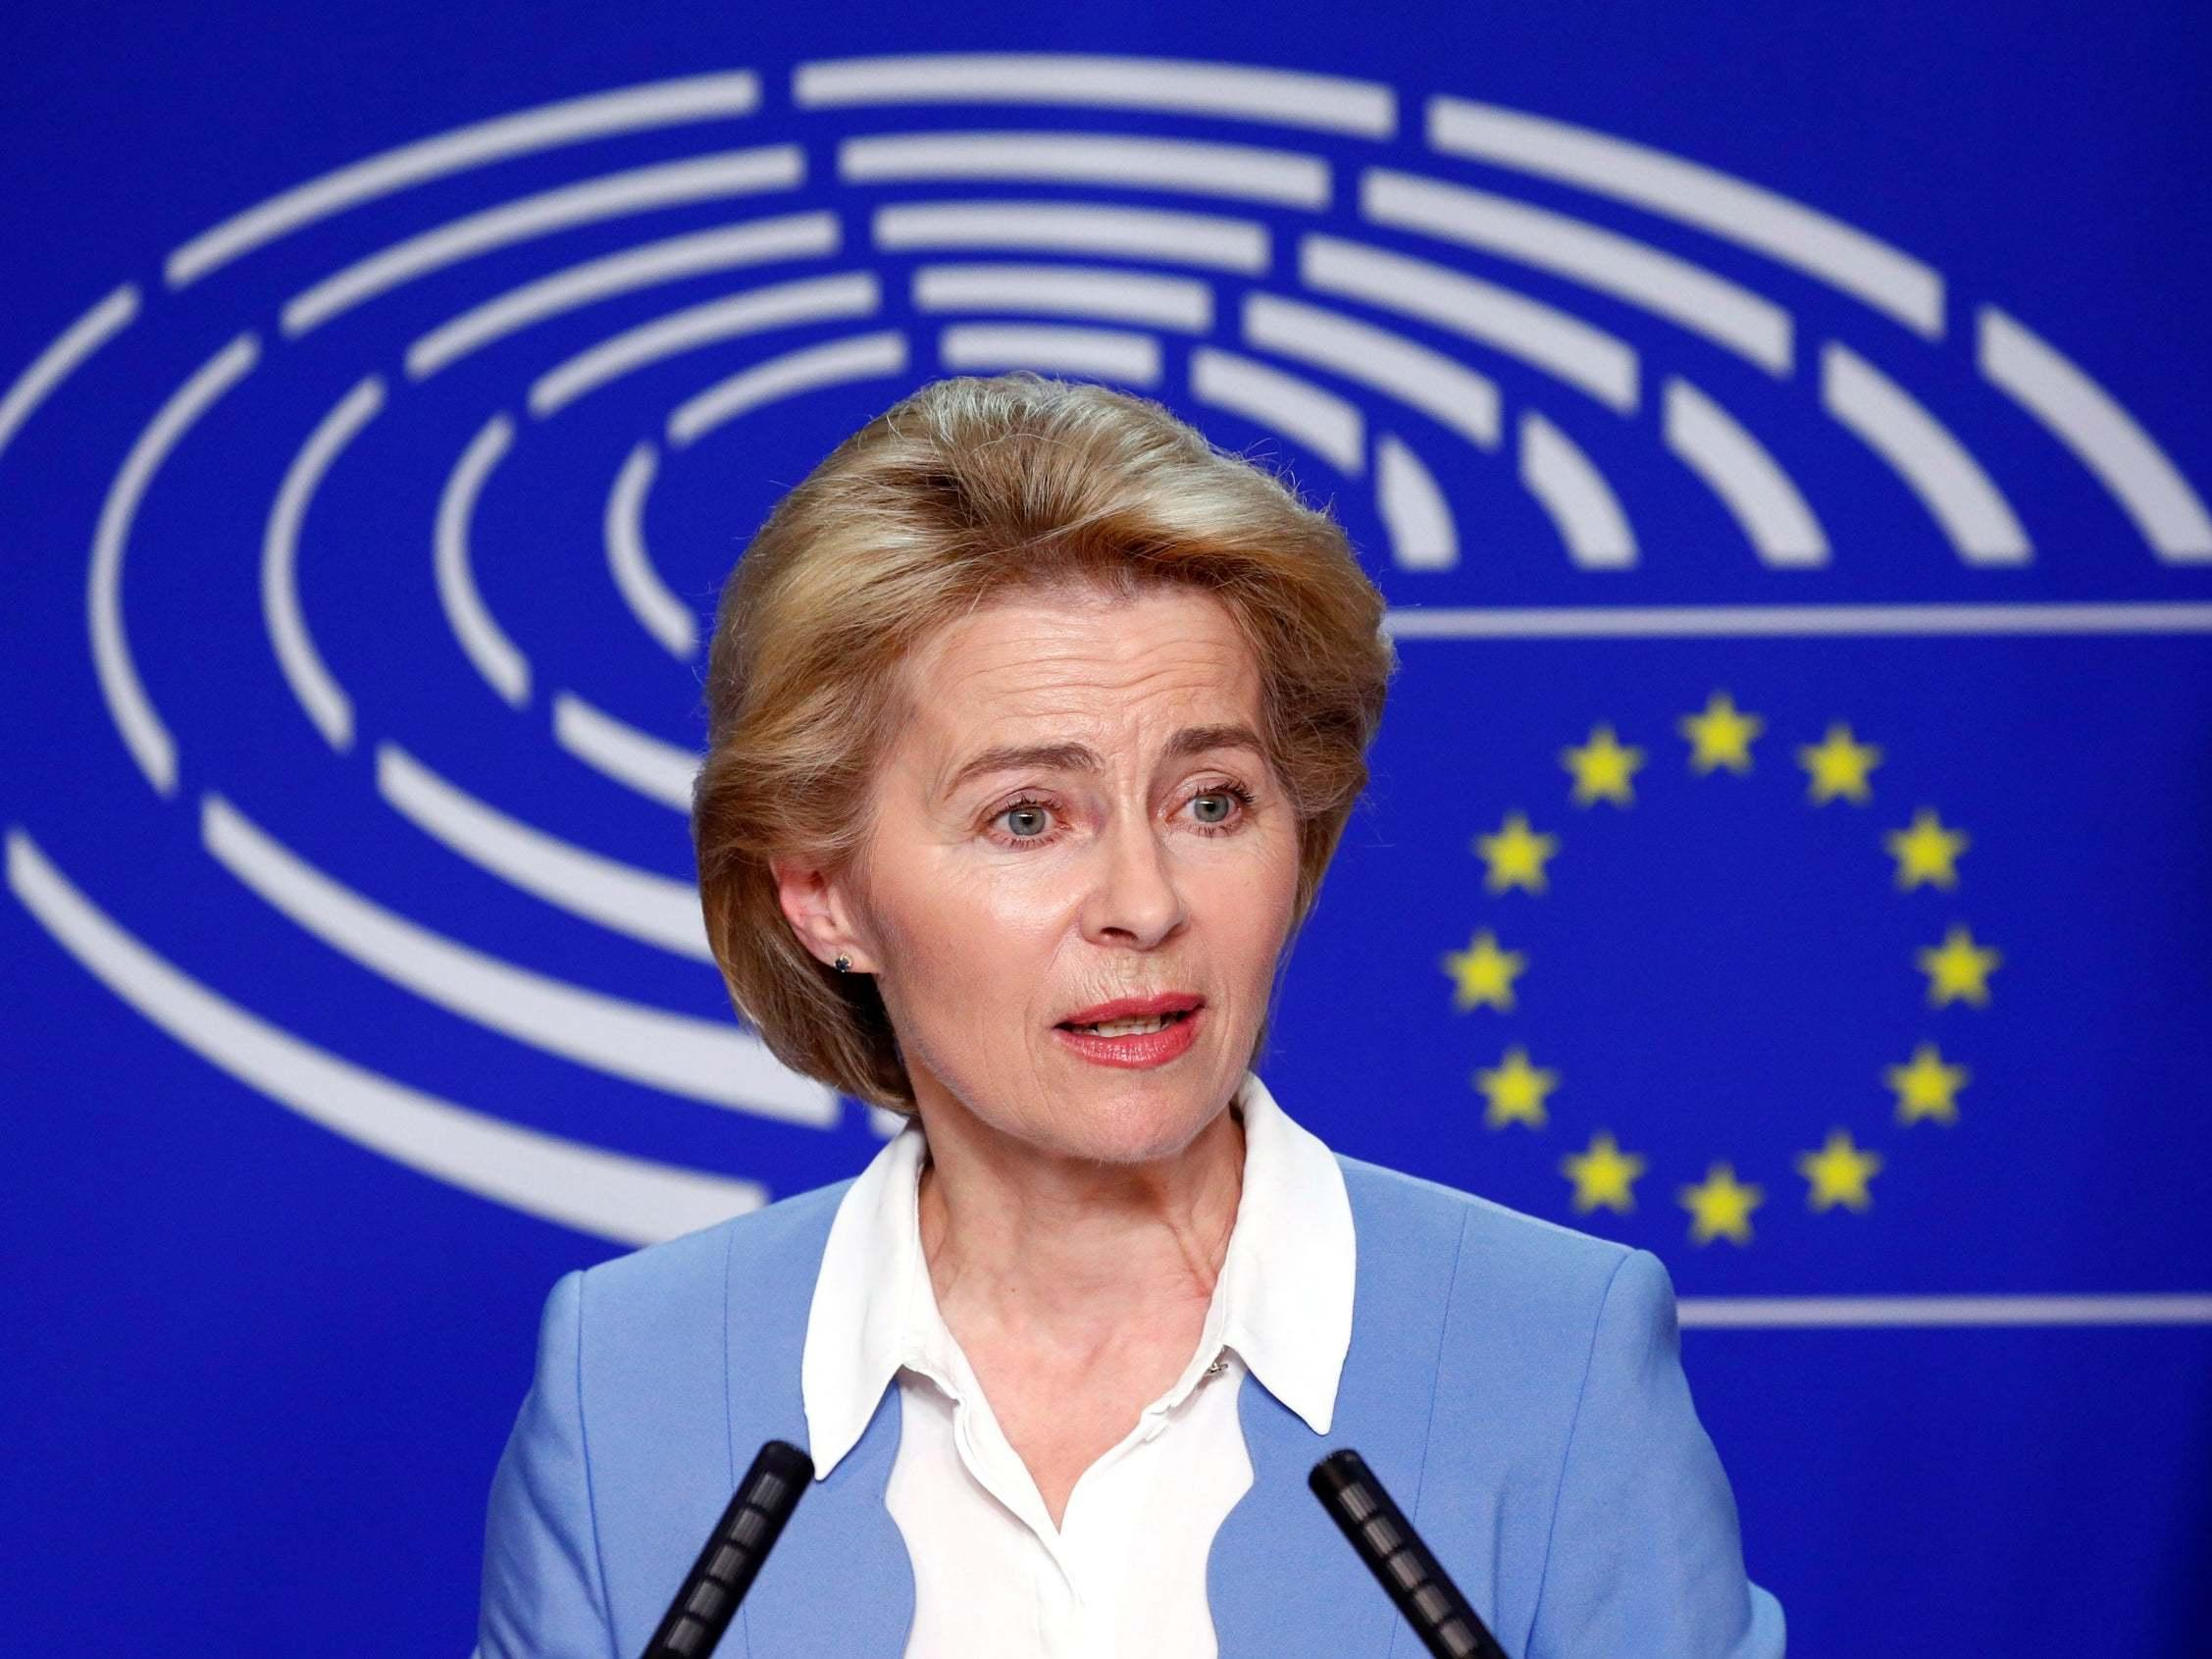 """This morning, Ursula von der Leyen, EU Commission president nominee, made a speech to the Strasbourg parliament to try to convince at least 374 MEPs to vote her into the Brussels top job. A narrow victory, in which she depends on right-wing support, would give her a fragile mandate to steer the EU for the next five years.As a woman and a European, I couldn't help being moved listening to EU Commission presidential hopeful von der Leyen's speech. Her commitment to the peace project and the possibility of the first woman president of the Commission were always going to be reasons to welcome her.However, the speech also made clear that she has responded to the Green Wave in Europe and the urgency of the climate challenge, but only as far as her business paymasters will allow. Her political roots make it impossible for her to embrace the fundamental social and economic changes that could turn the sustainability transition into a celebration of diversity and equality.To gain Green and progressive votes she would have needed an entirely different speech. Here's what it might have looked like:""""Firstly, I'd like to start with what binds our Union together – the rule of law. This is why my first commitment as Commission president will be to bring in a new mechanism whereby independent experts permanently monitor all EU countries. Where there is evidence of breaches of the rule of law, strict sanctions will follow.""""Now to the most pressing issue facing our planet – the climate emergency. The EU must show global leadership to avert global temperature rises above 1.5C. Not only do I want to see the elimination of fossil fuels from Europe by 2050, but I want to increase our short-term ambition. We must aim for net-zero-carbon by 2030 based on a 65 per cent reduction in emissions across the bloc and significant investment in land-based carbon capture.""""A key element to achieving our emissions targets is a fair system for carbon pricing. I want to see fundamental reform of the Emis"""